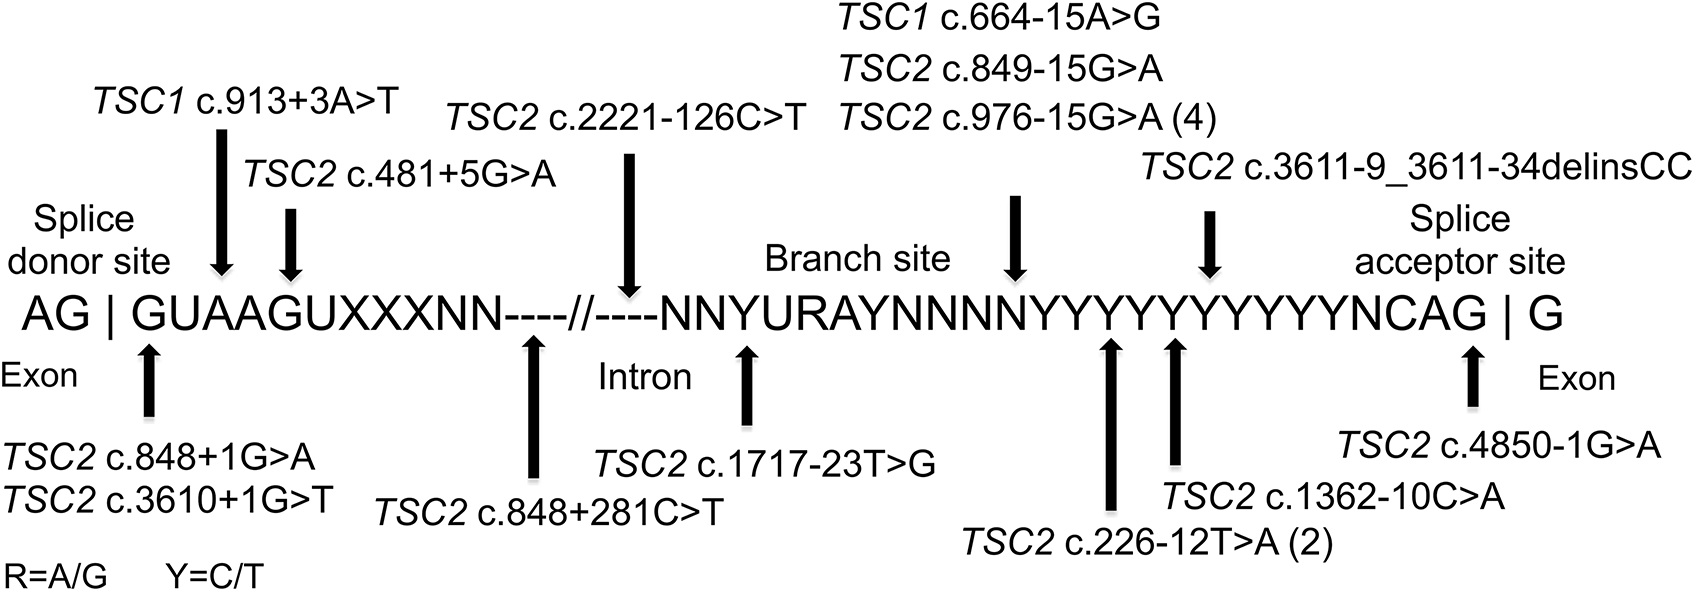 Intronic mutations in 18 TSC NMI subjects.